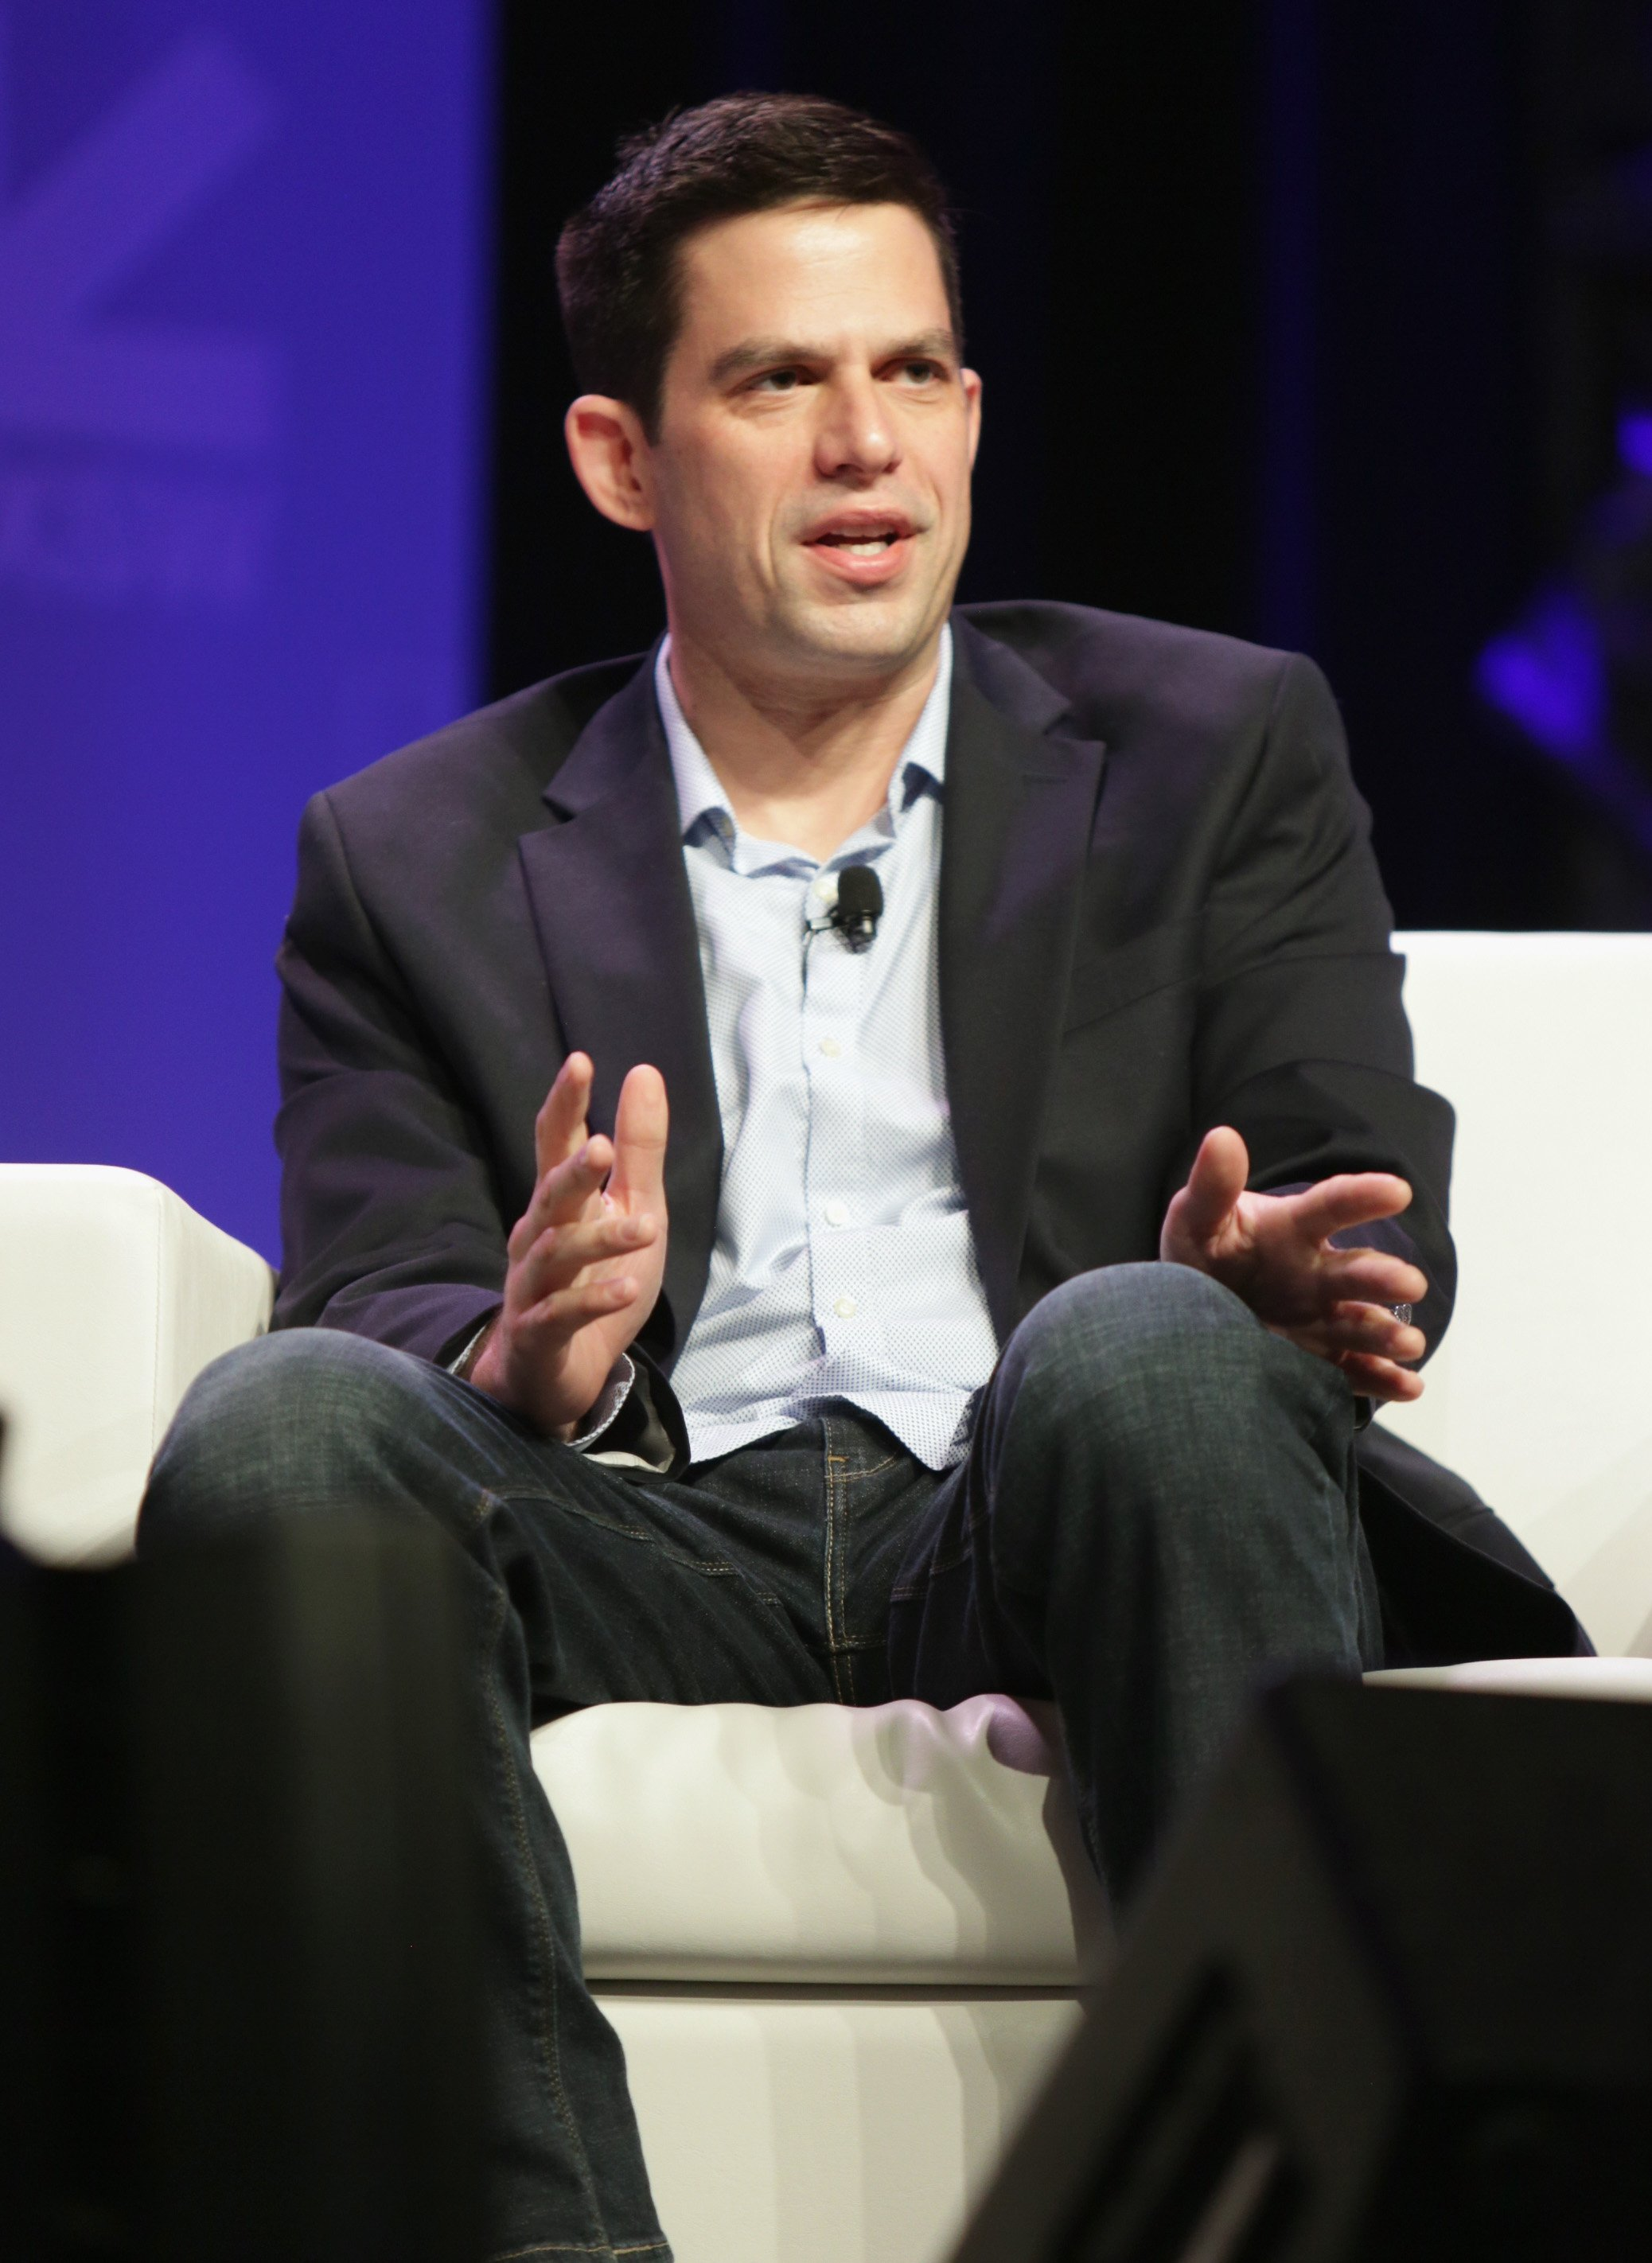 Lawyer Jeffrey Marty speaking at the SXSW Conference and Festivals in Texas in March 2017 | Photo: Getty Images